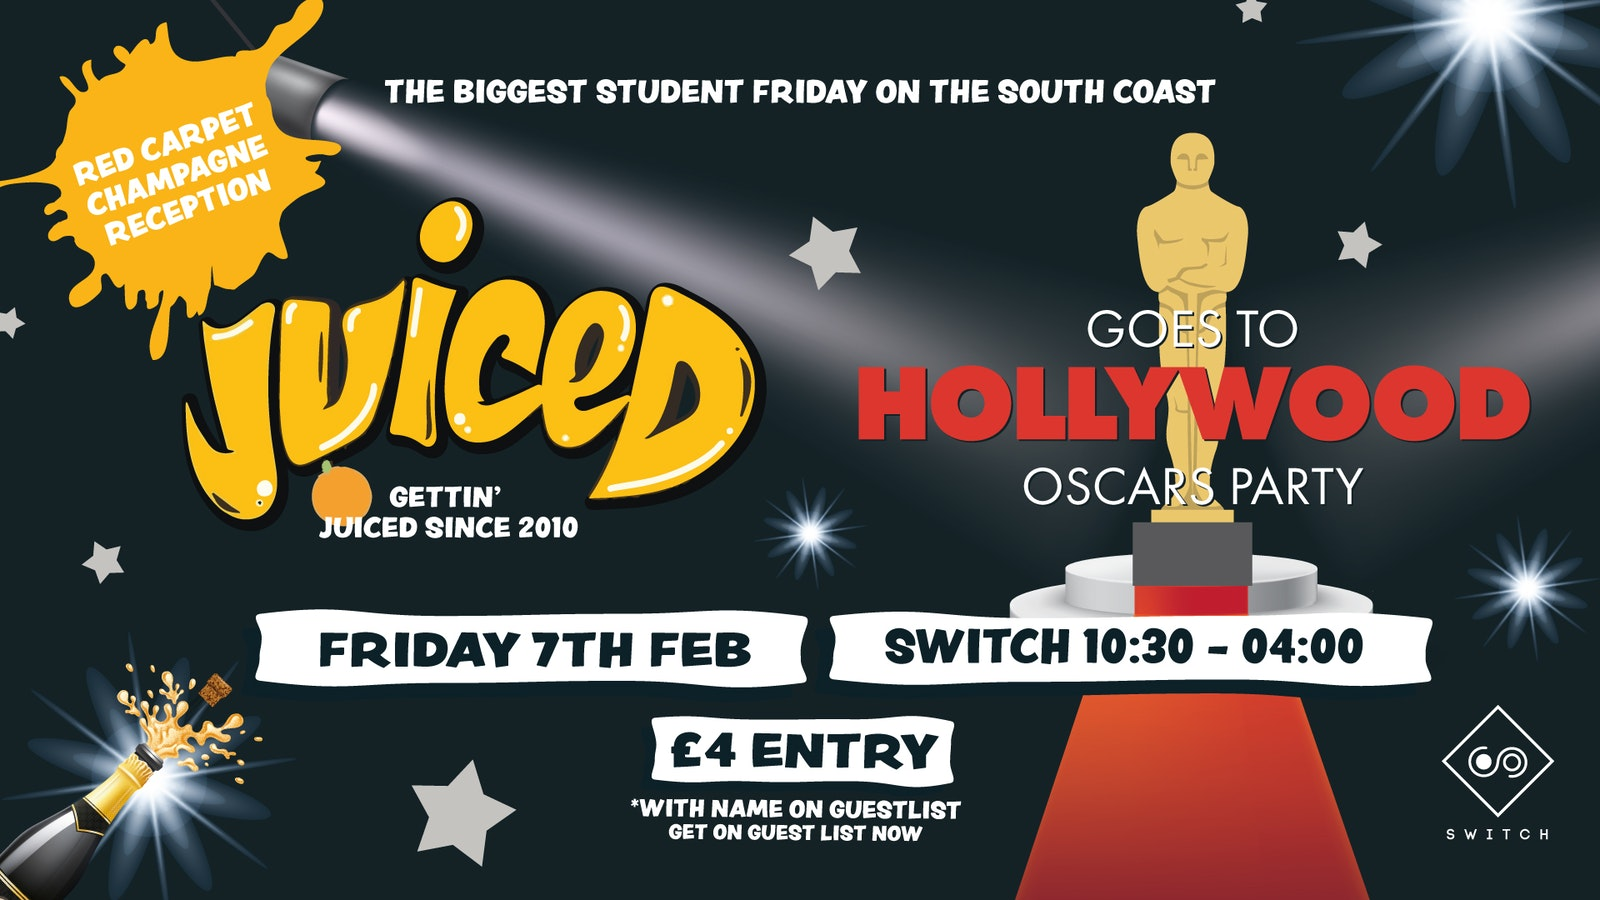 Juiced goes to Hollywood – VIP Ticket £6